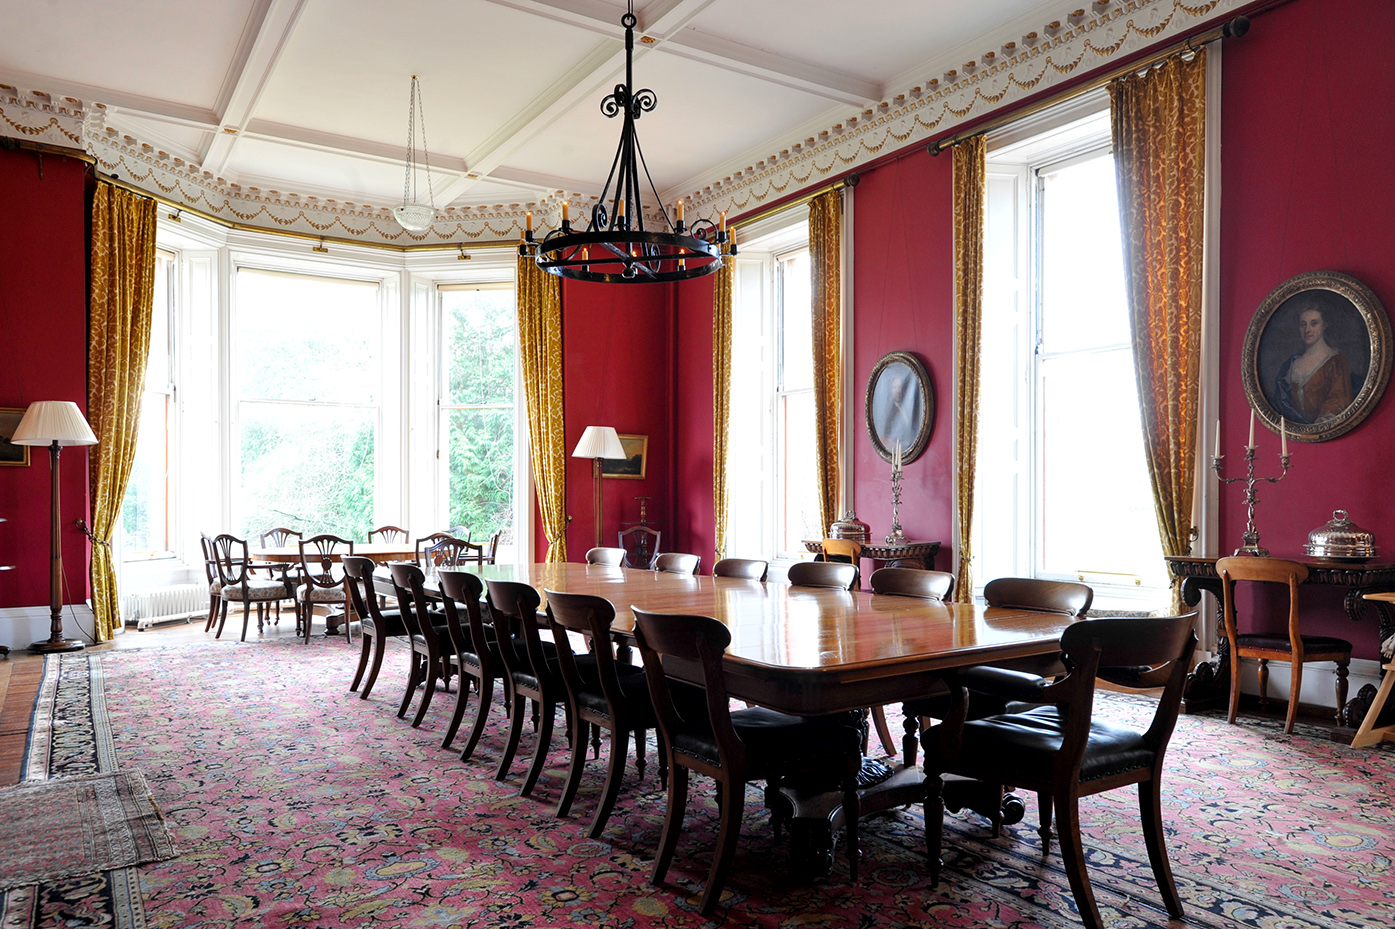 The dining room. Photo courtesy of Sir Peter Erskine